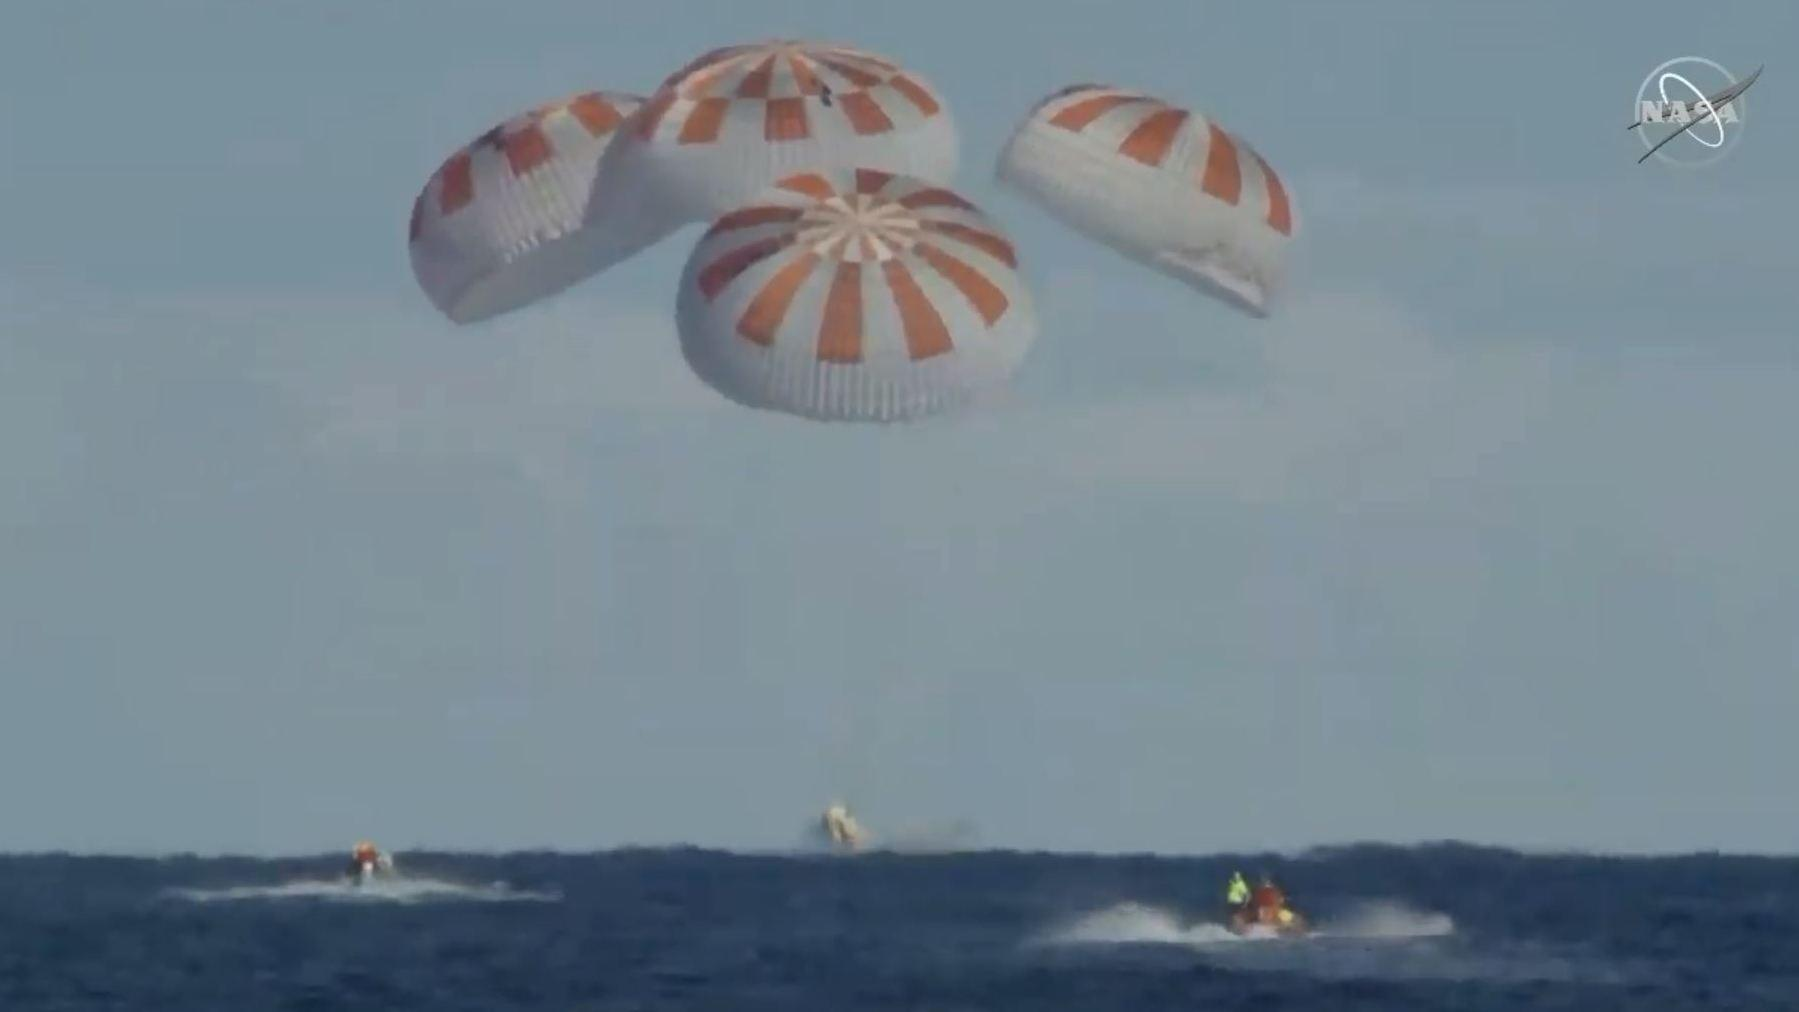 Video of SpaceX's Crew Dragon capsule returning to Earth is pretty stunning